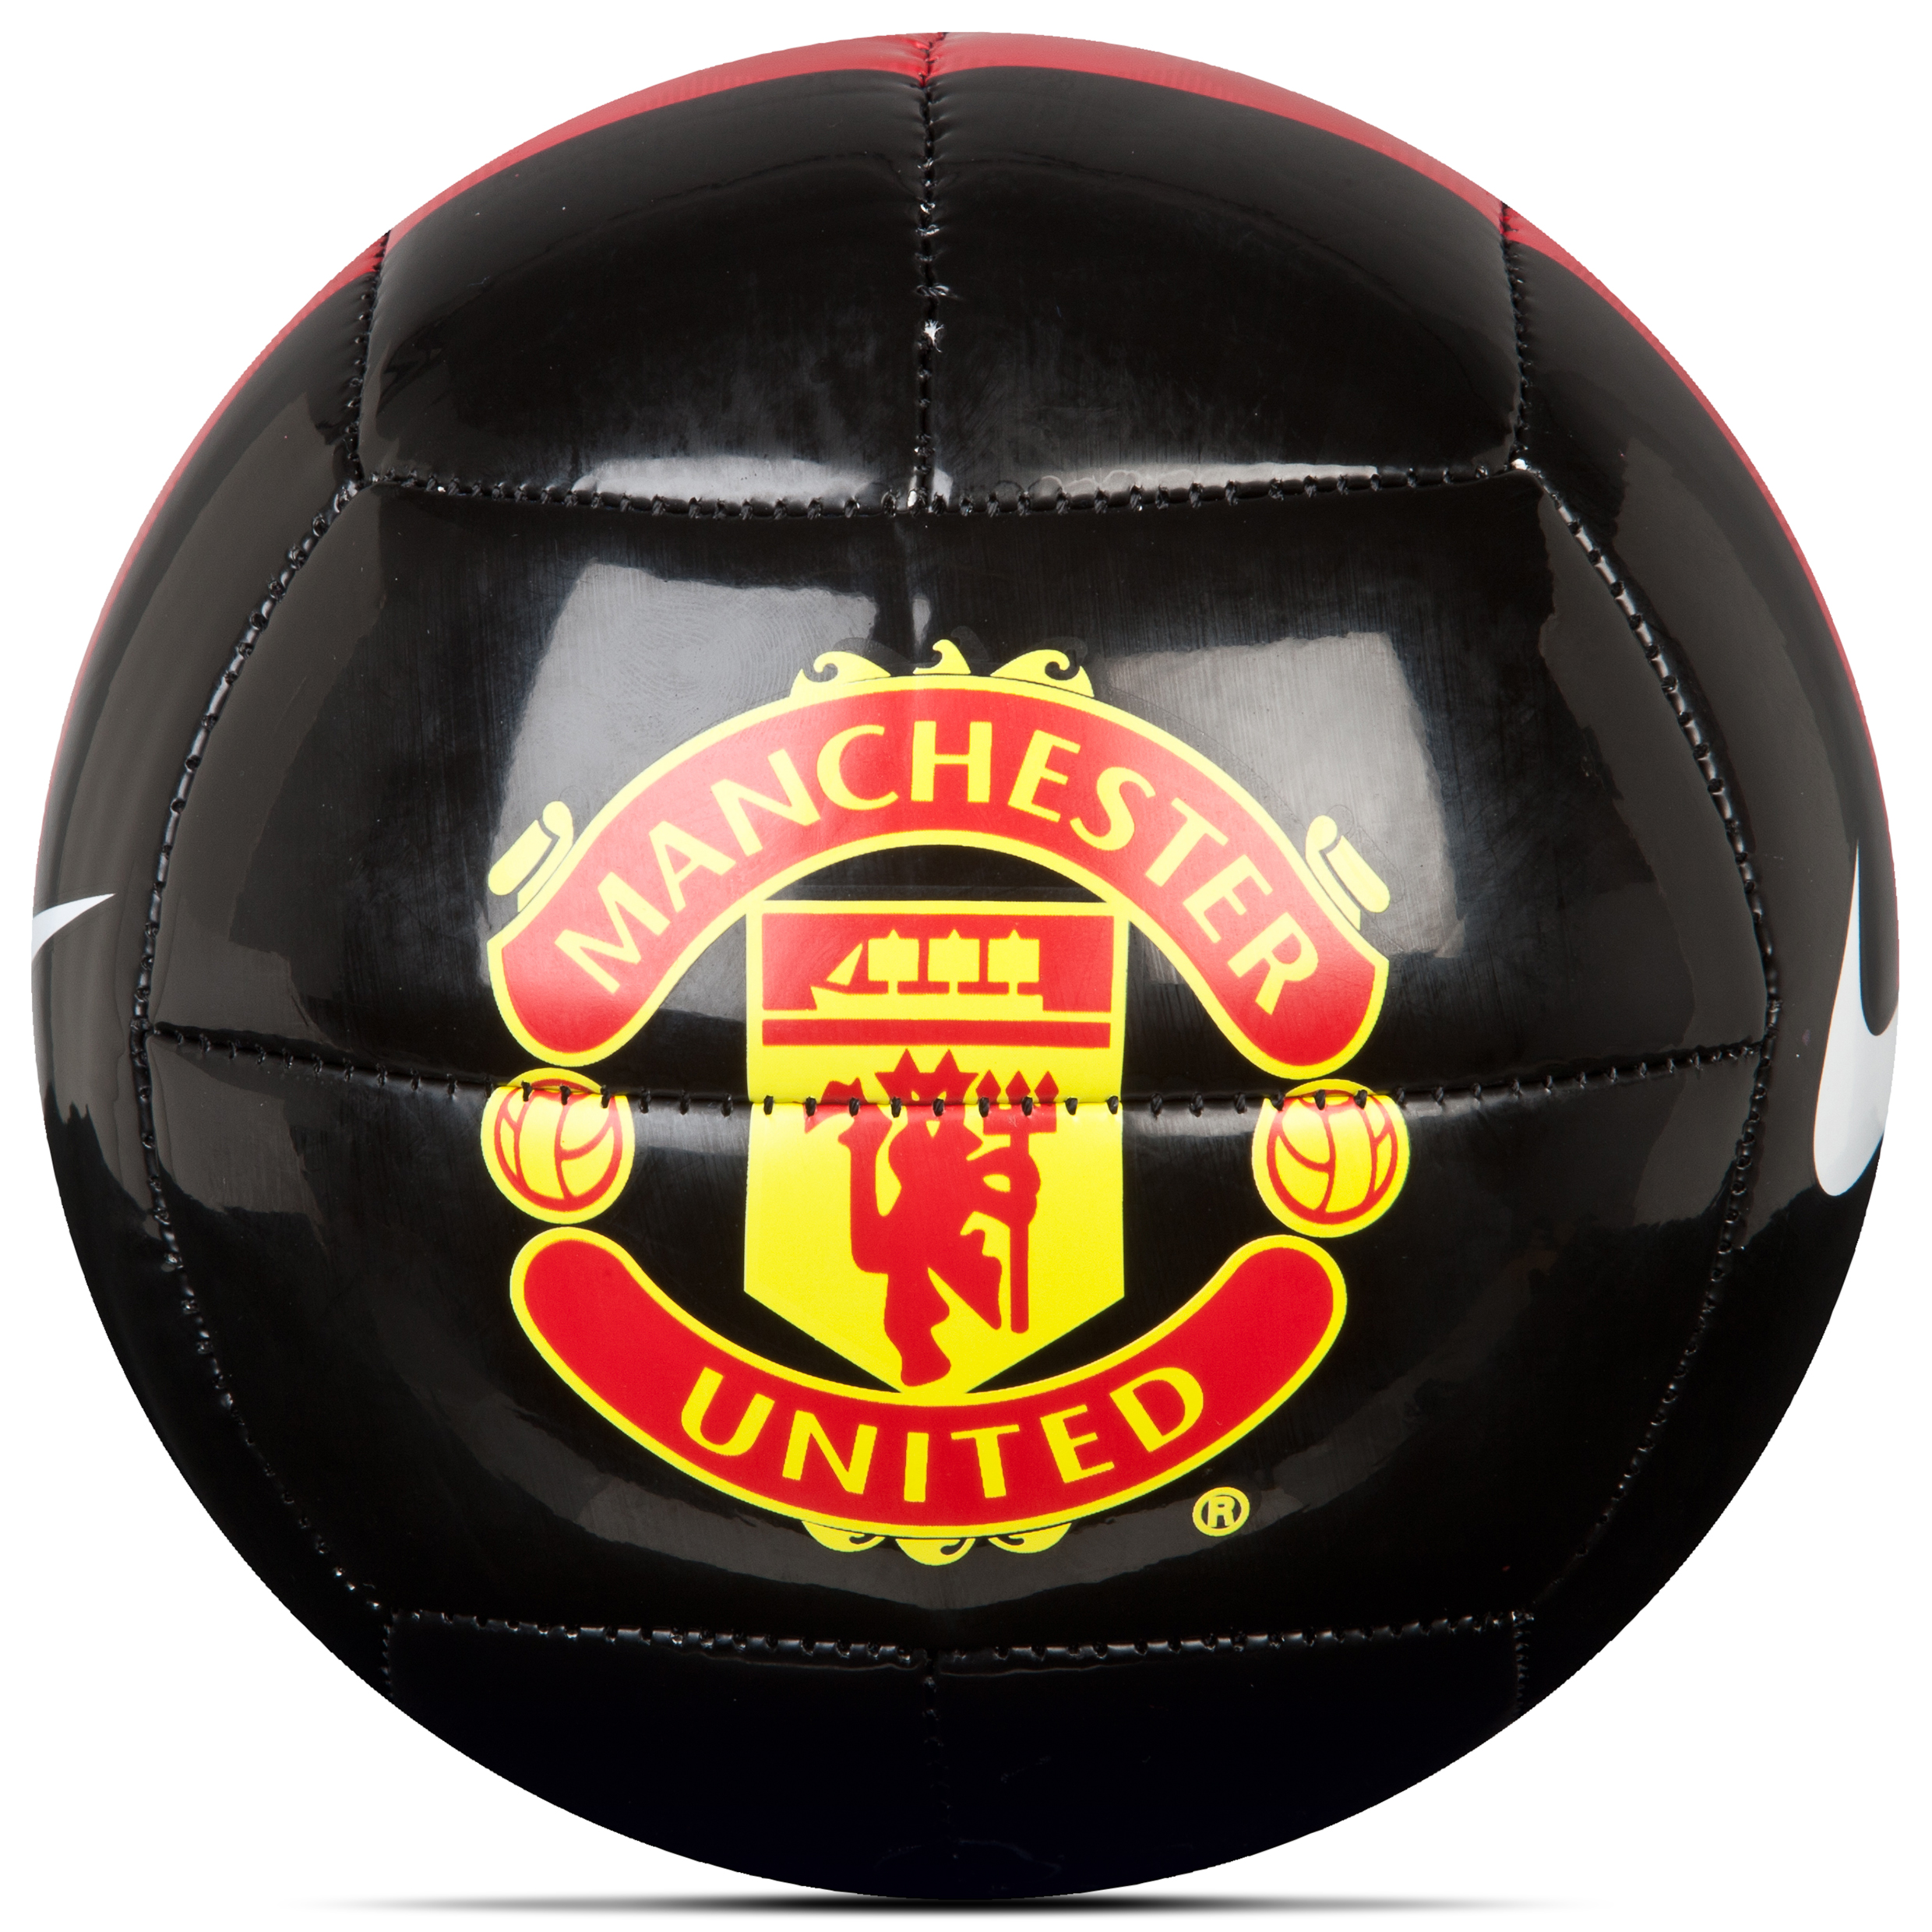 Manchester United Skills Size 1 Football - Black/Red/(White)